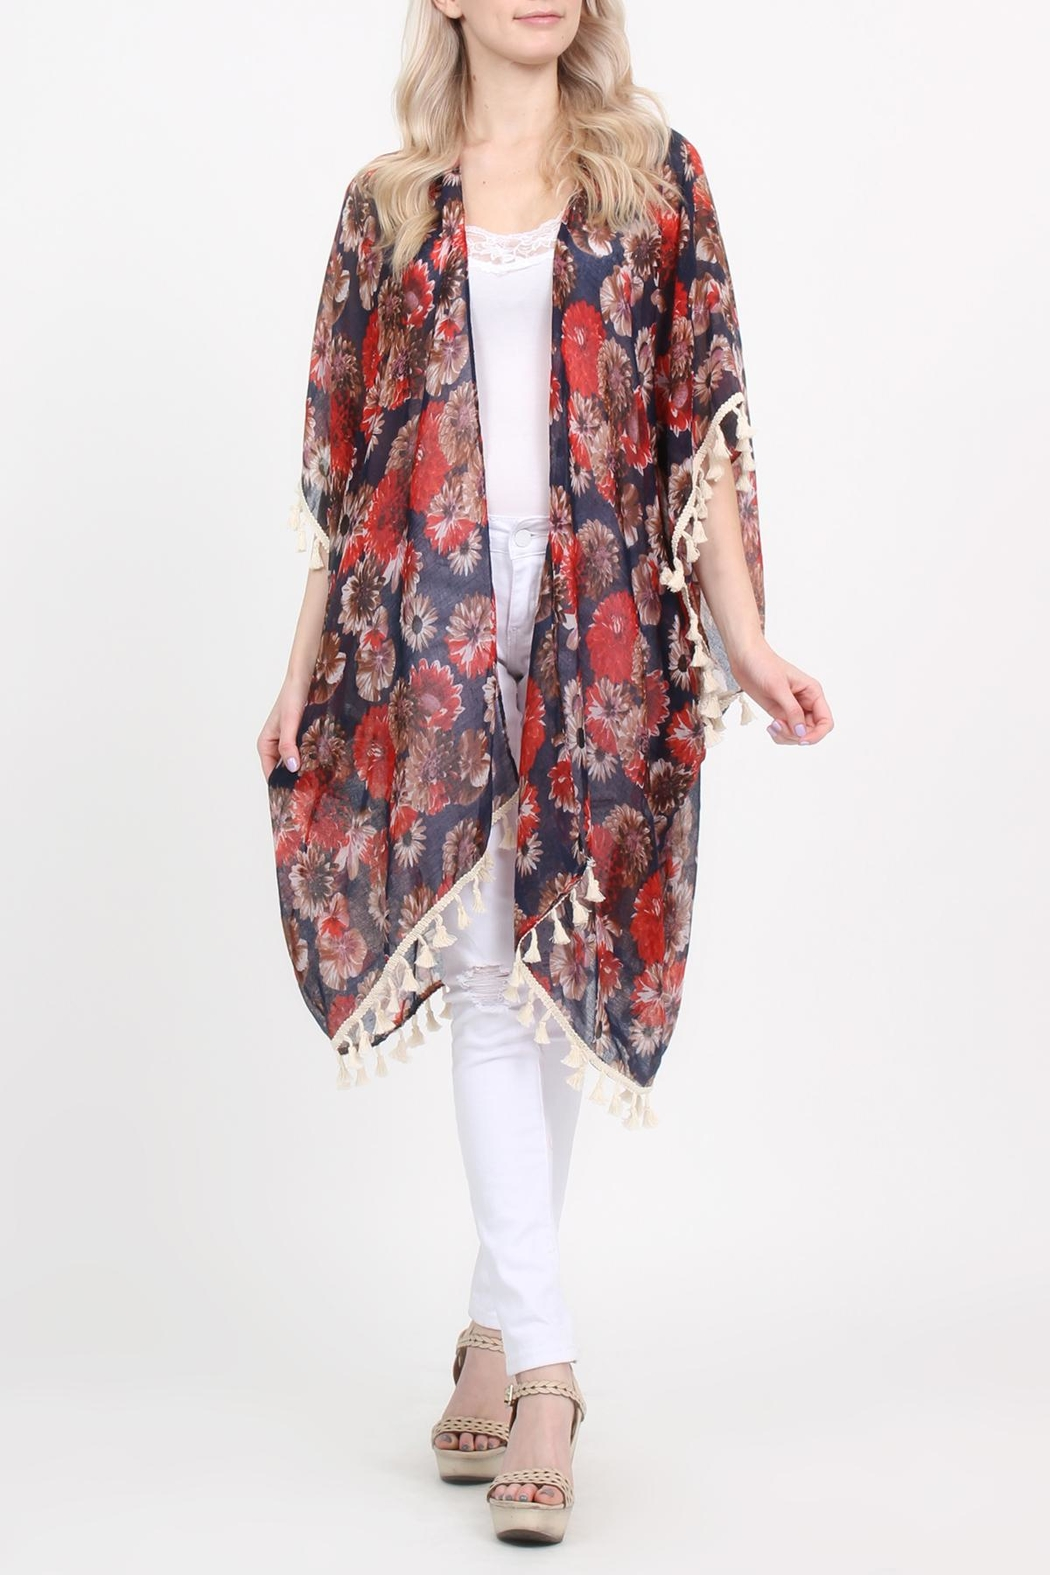 Riah Fashion Floral-Print Semi-Sheer Tassel-Cardigan - Side Cropped Image